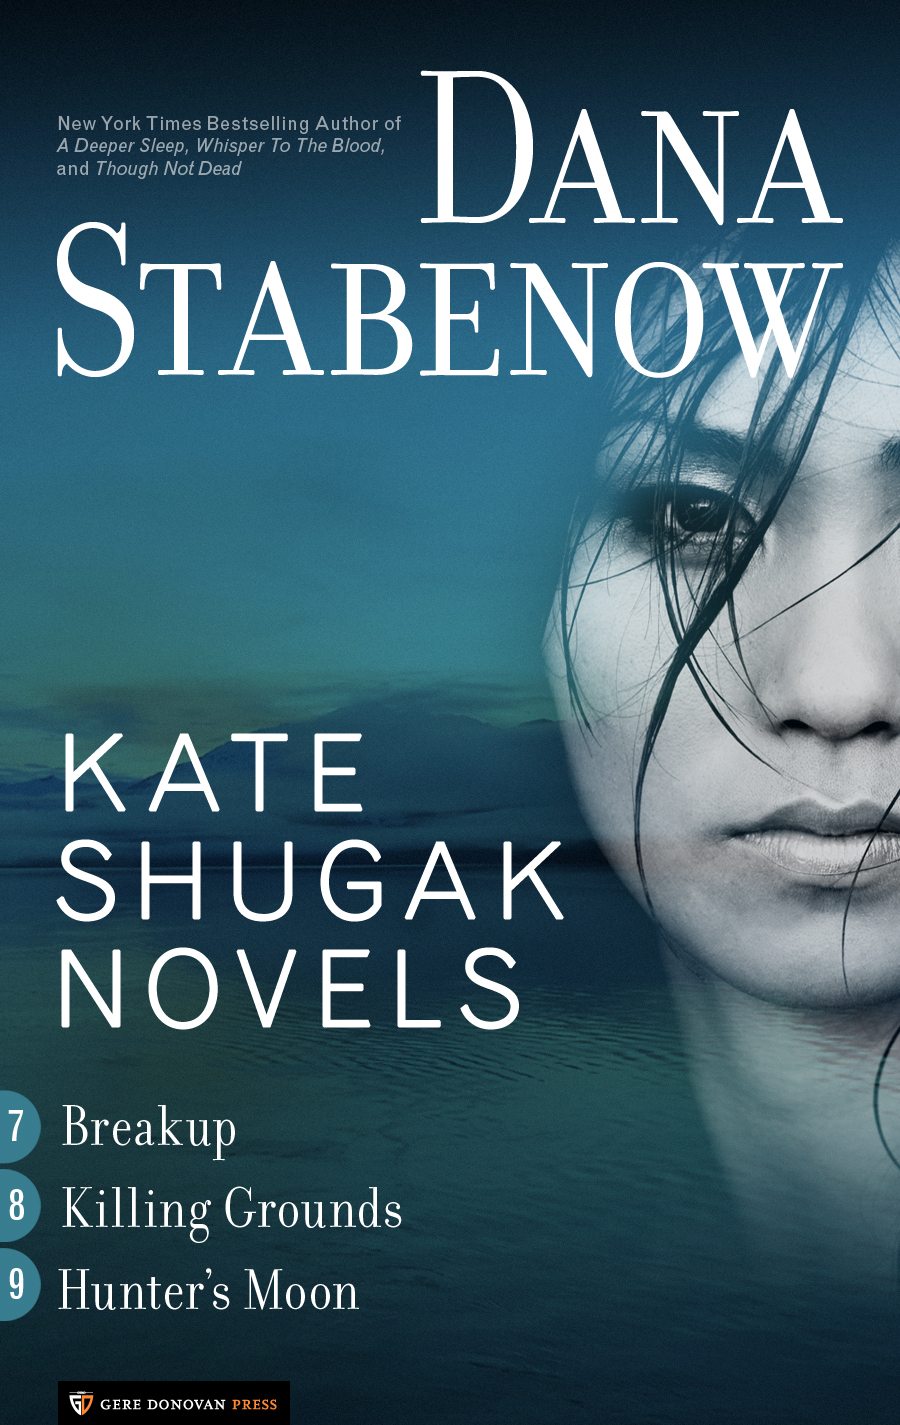 The Kate Shugak Novels, Vol. 3